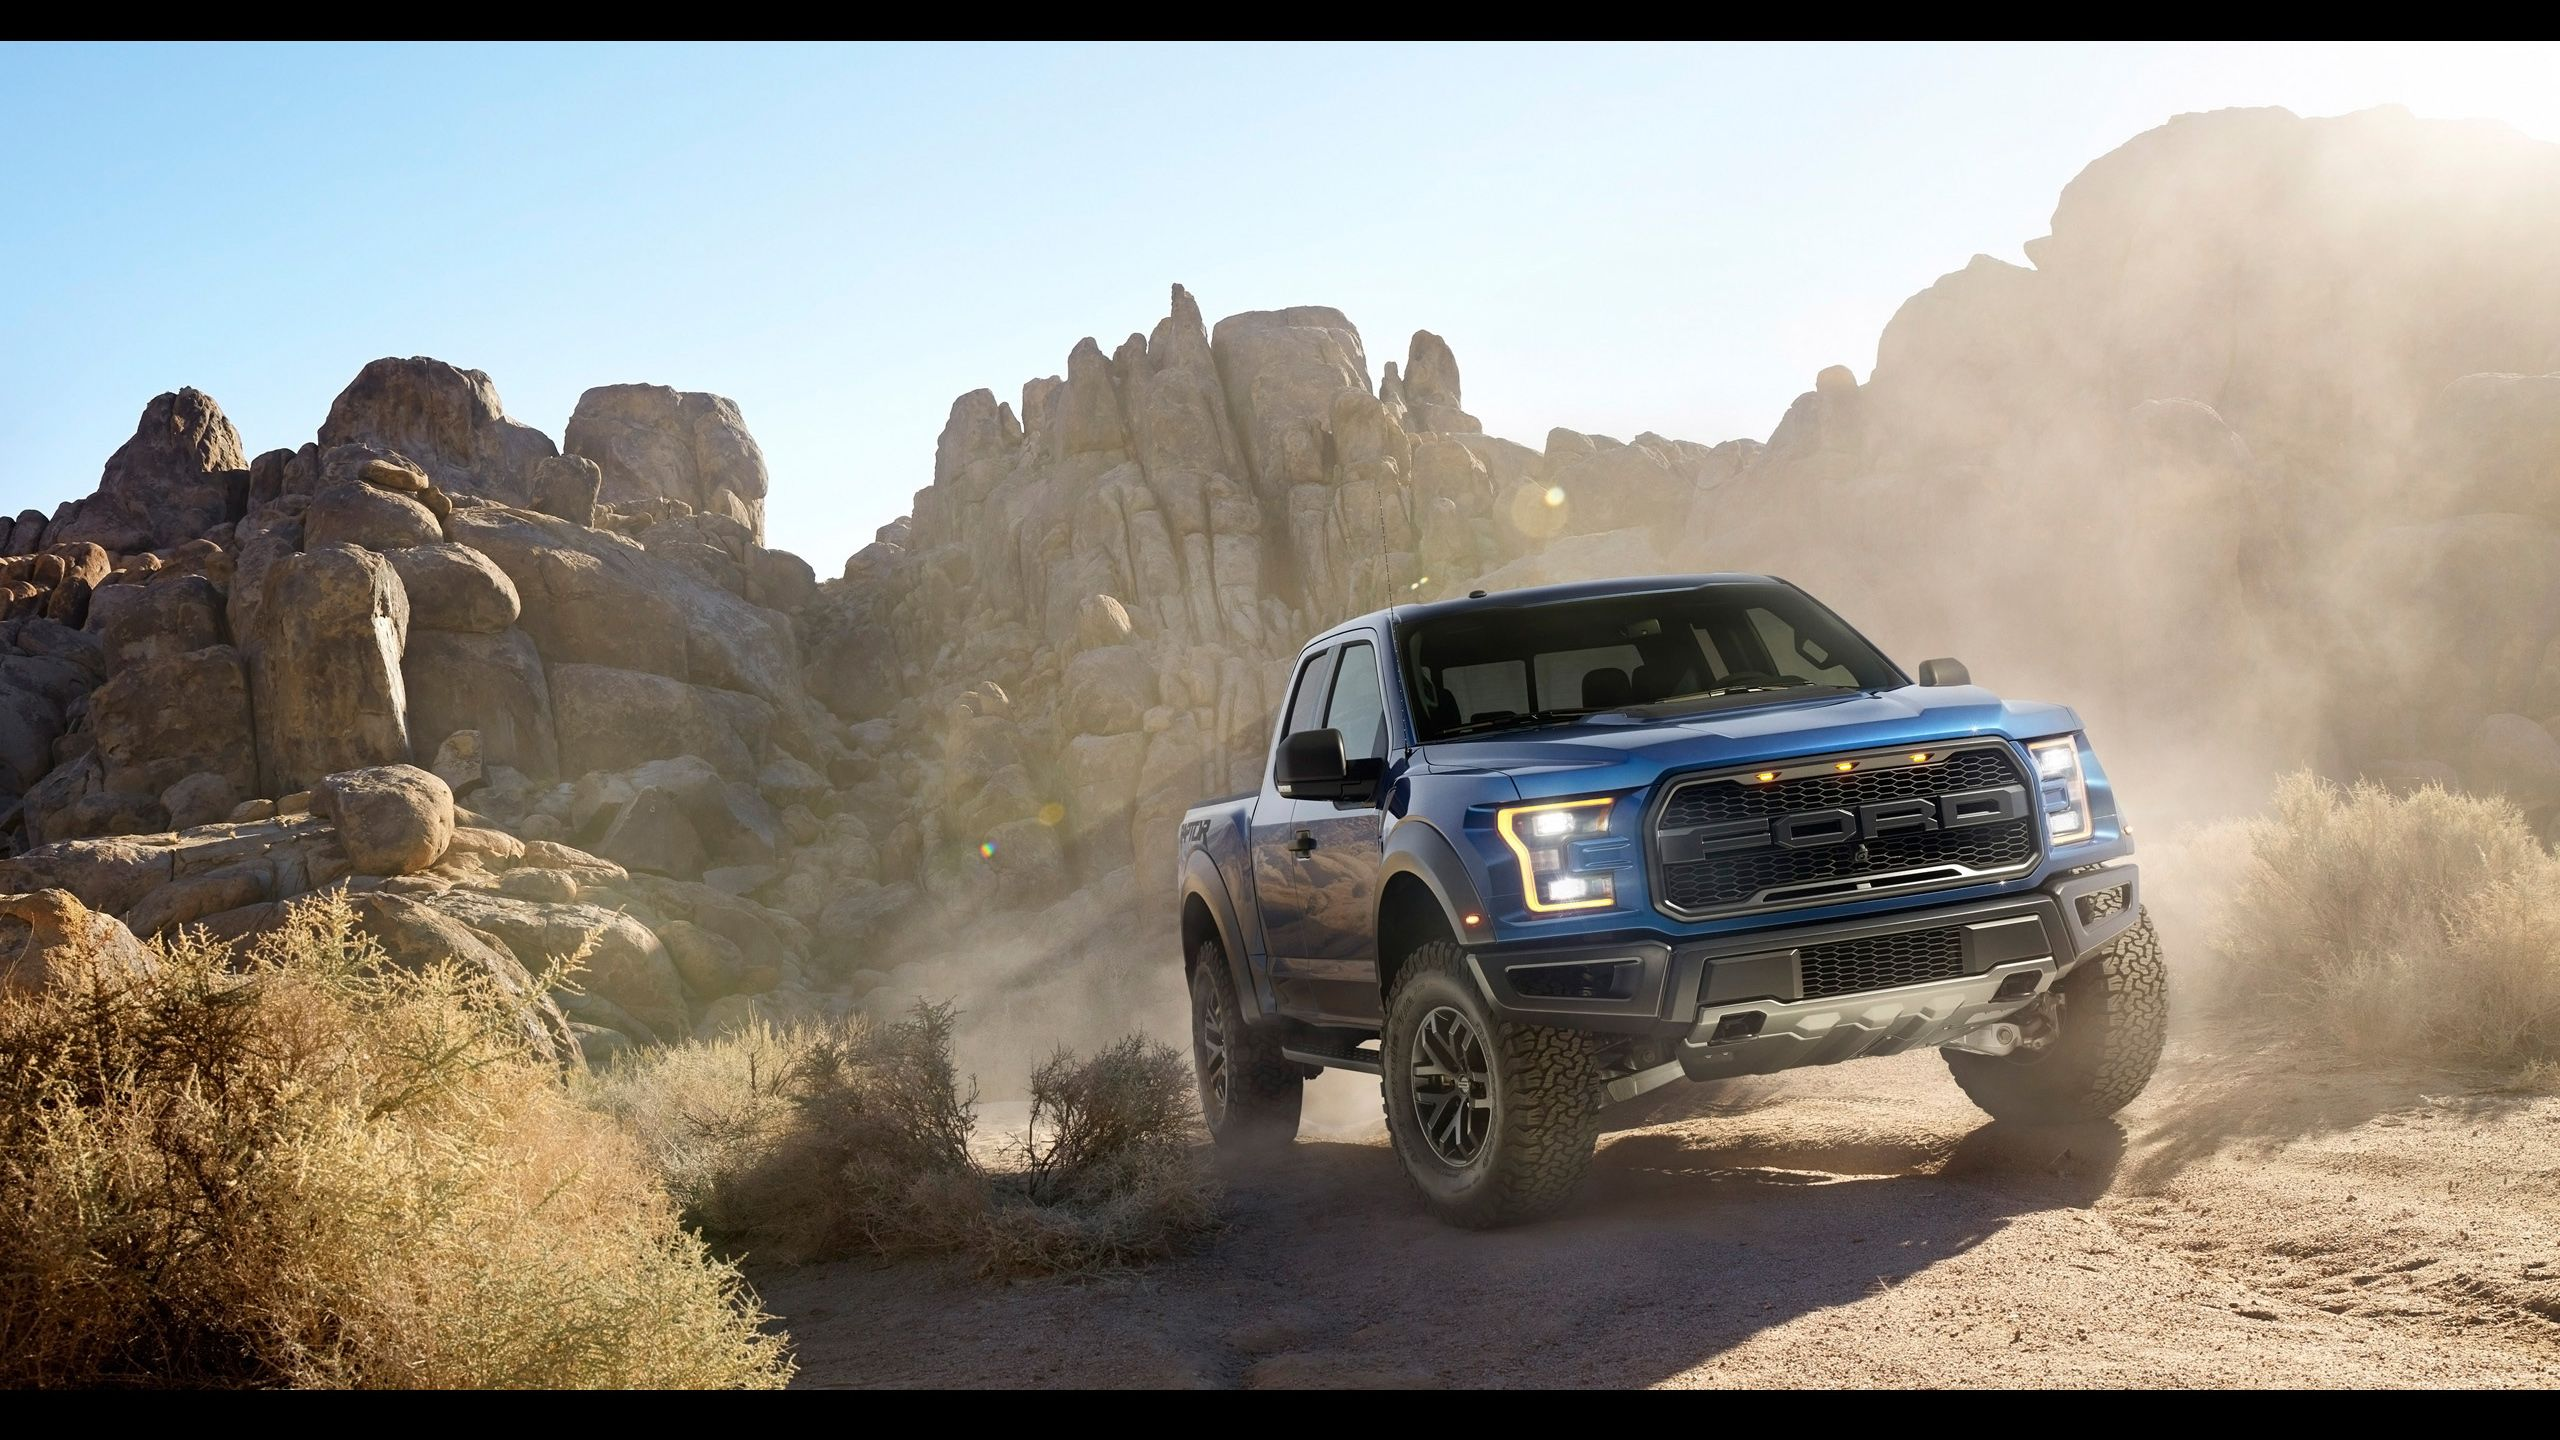 Ford F Ultra Hd Wallpaper For Desktop And Mobile 1920 1246 F150 Wallpapers 37 Wallpapers Adorable Wallpapers Desert ford truck full hd wallpapers